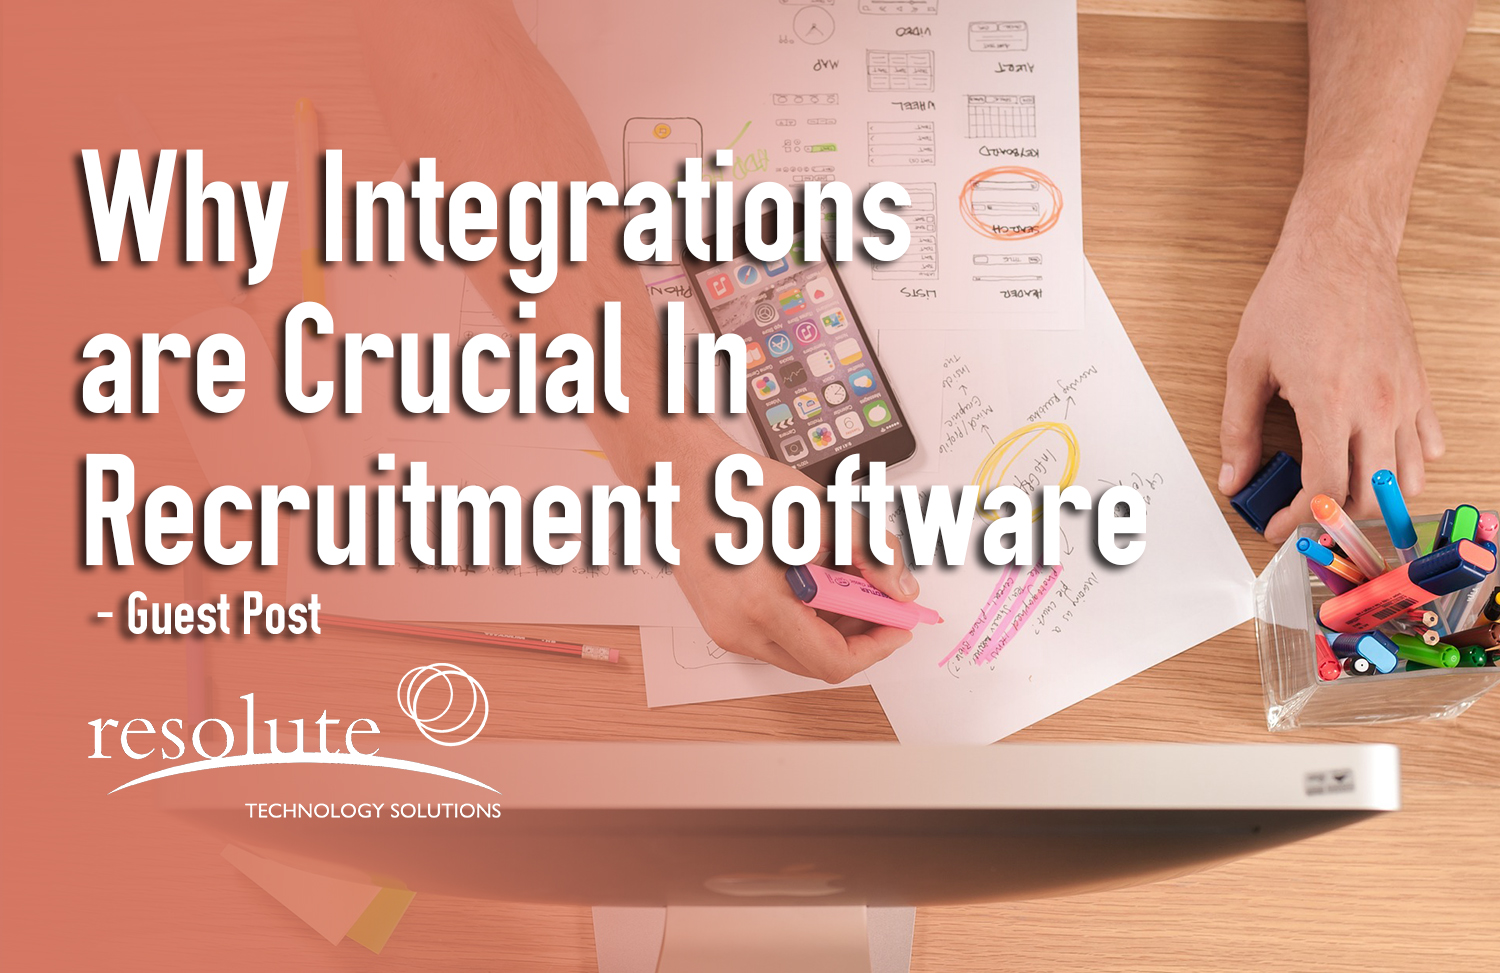 Why Integrations are Crucial When It Comes to Recruitment Software